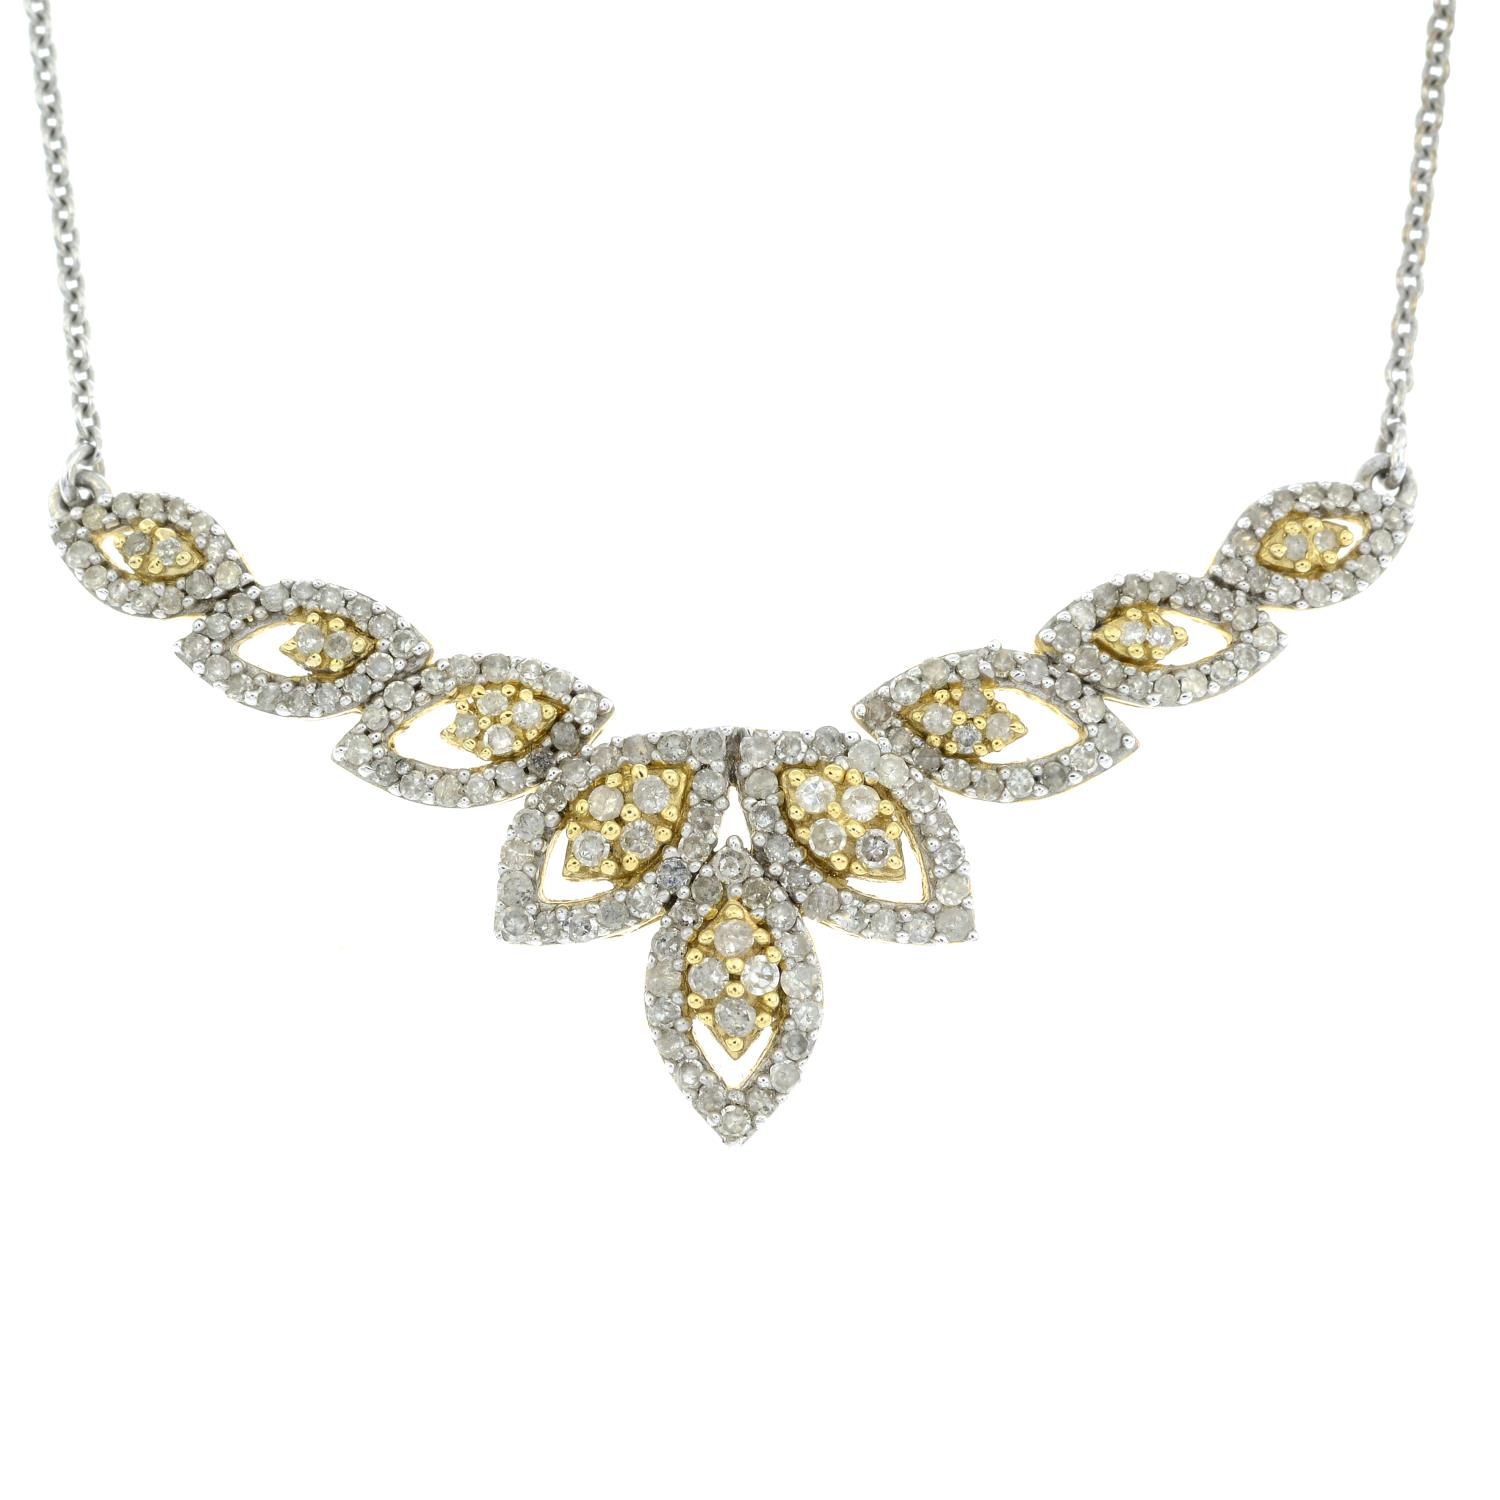 A diamond necklace.Stamped 925.Lengths 46.5cms.